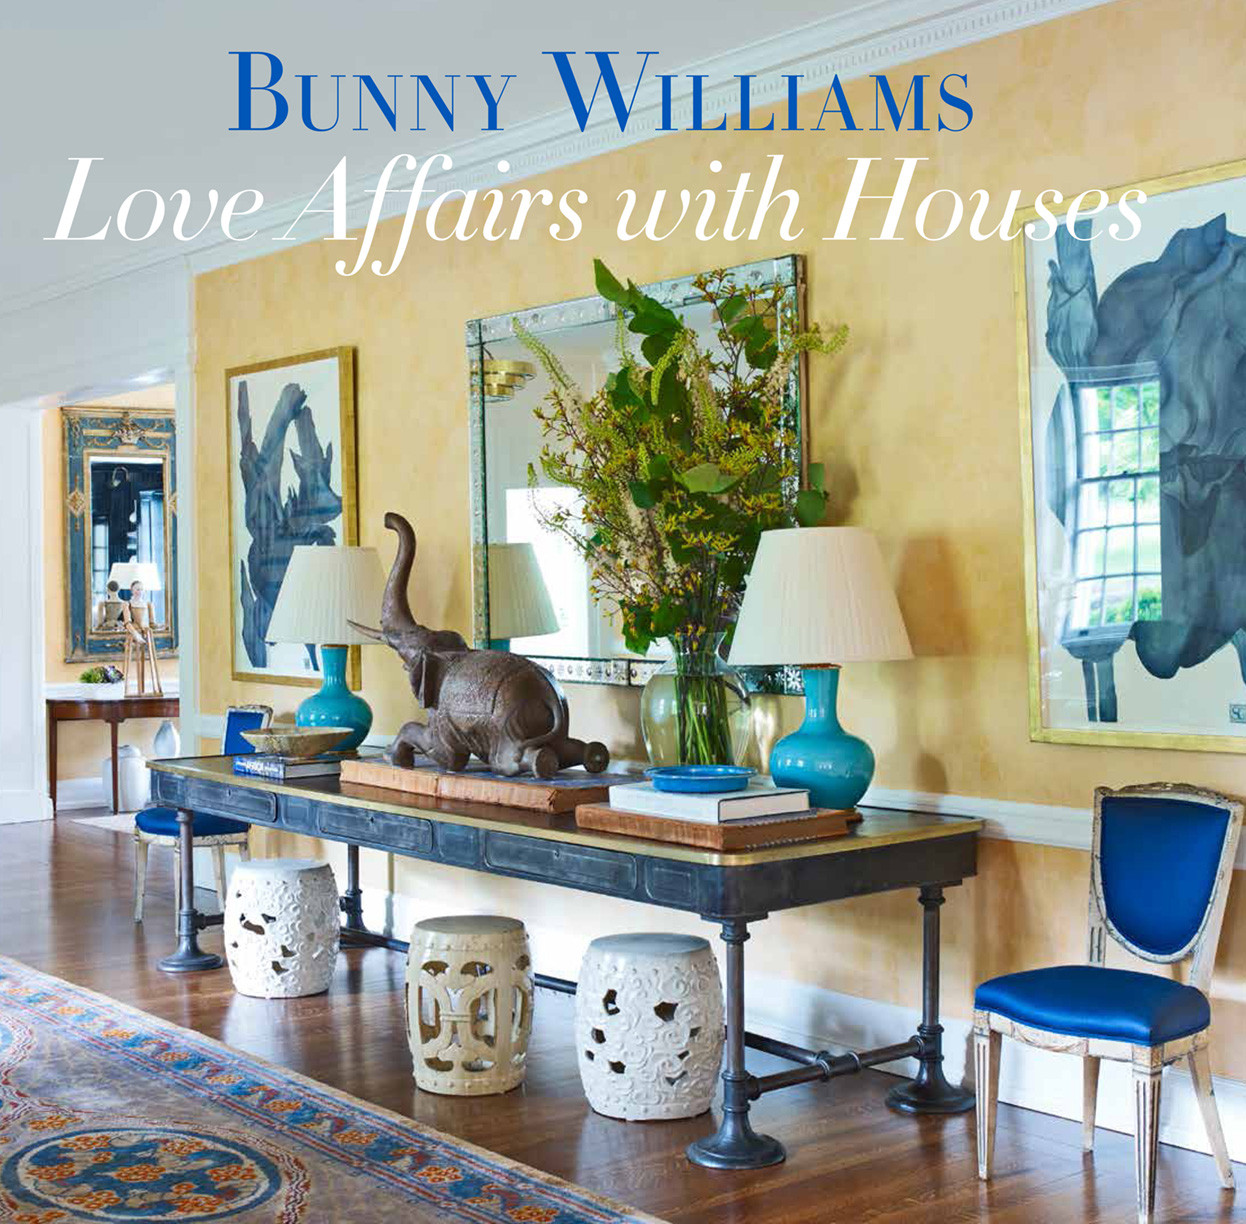 Love Affairs with Houses cover.jpg